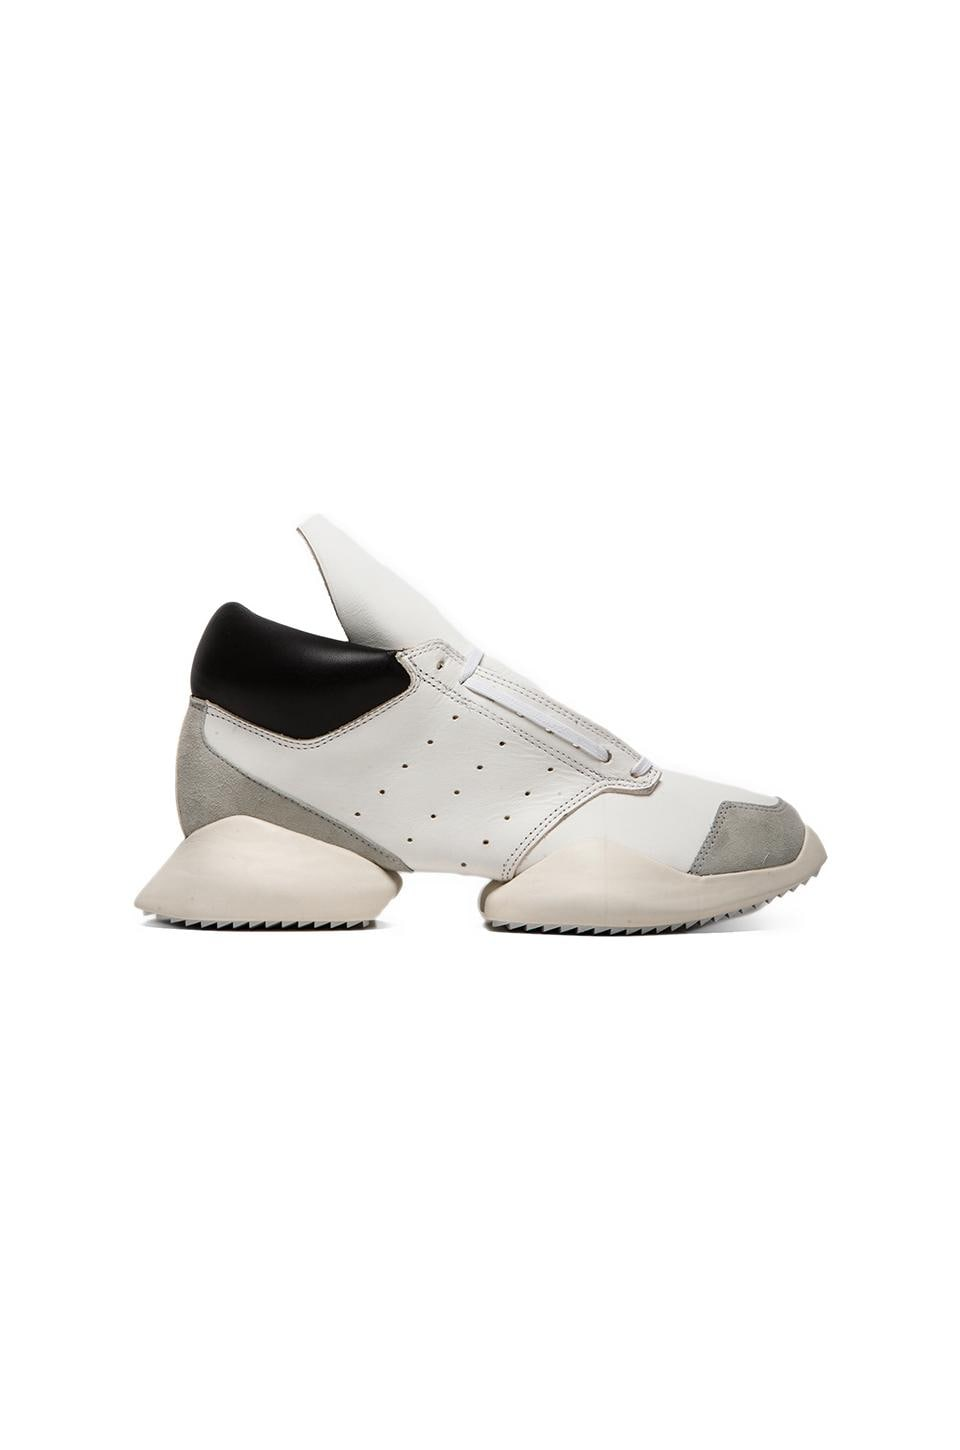 adidas by Rick Owens Runner in White & Black & Bone